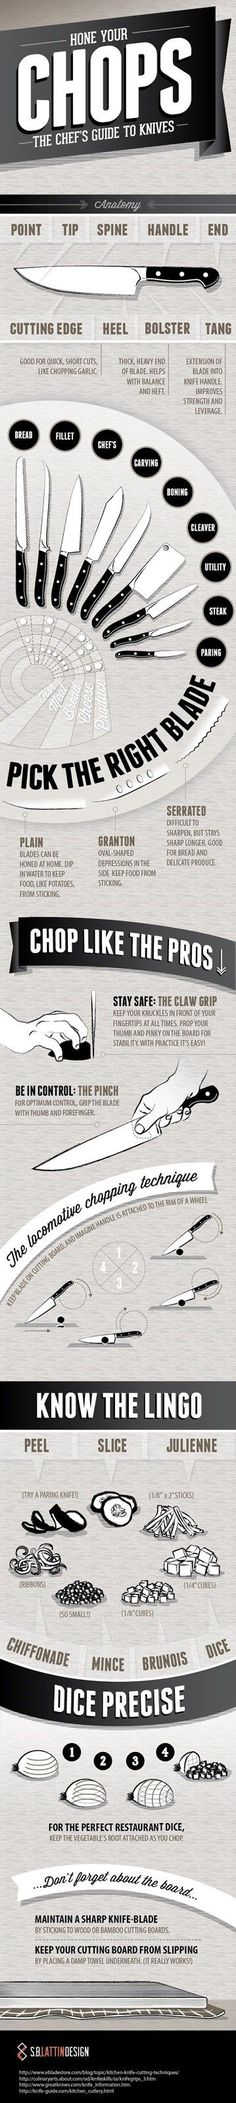 Knife Guide:  Always wanted to know this as I could figure out what knife to use or proper way to cut.  Now I'll know....